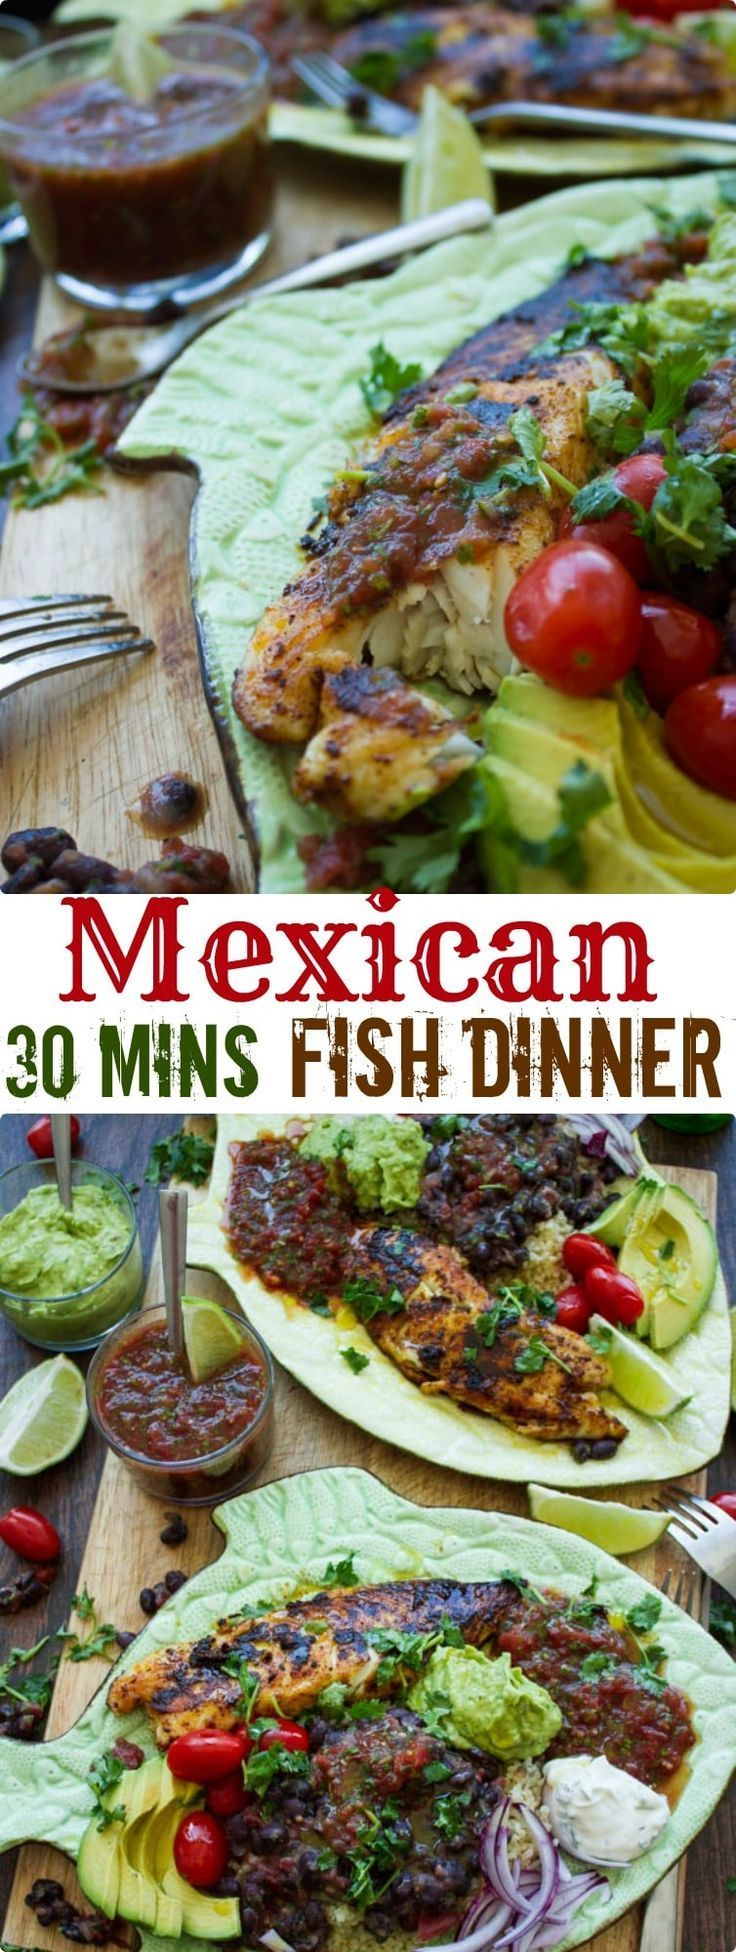 30 Minutes Fish Dinner | Pressed for time? This Mexican feast of pan-fried tilapia fillets with Mexican black beans, homemade guacamole and restaurant-style salsa comes together in just 30 minutes and is healthy, nutritious and outrageously delicious! #dinner, |  @twopurplefigs